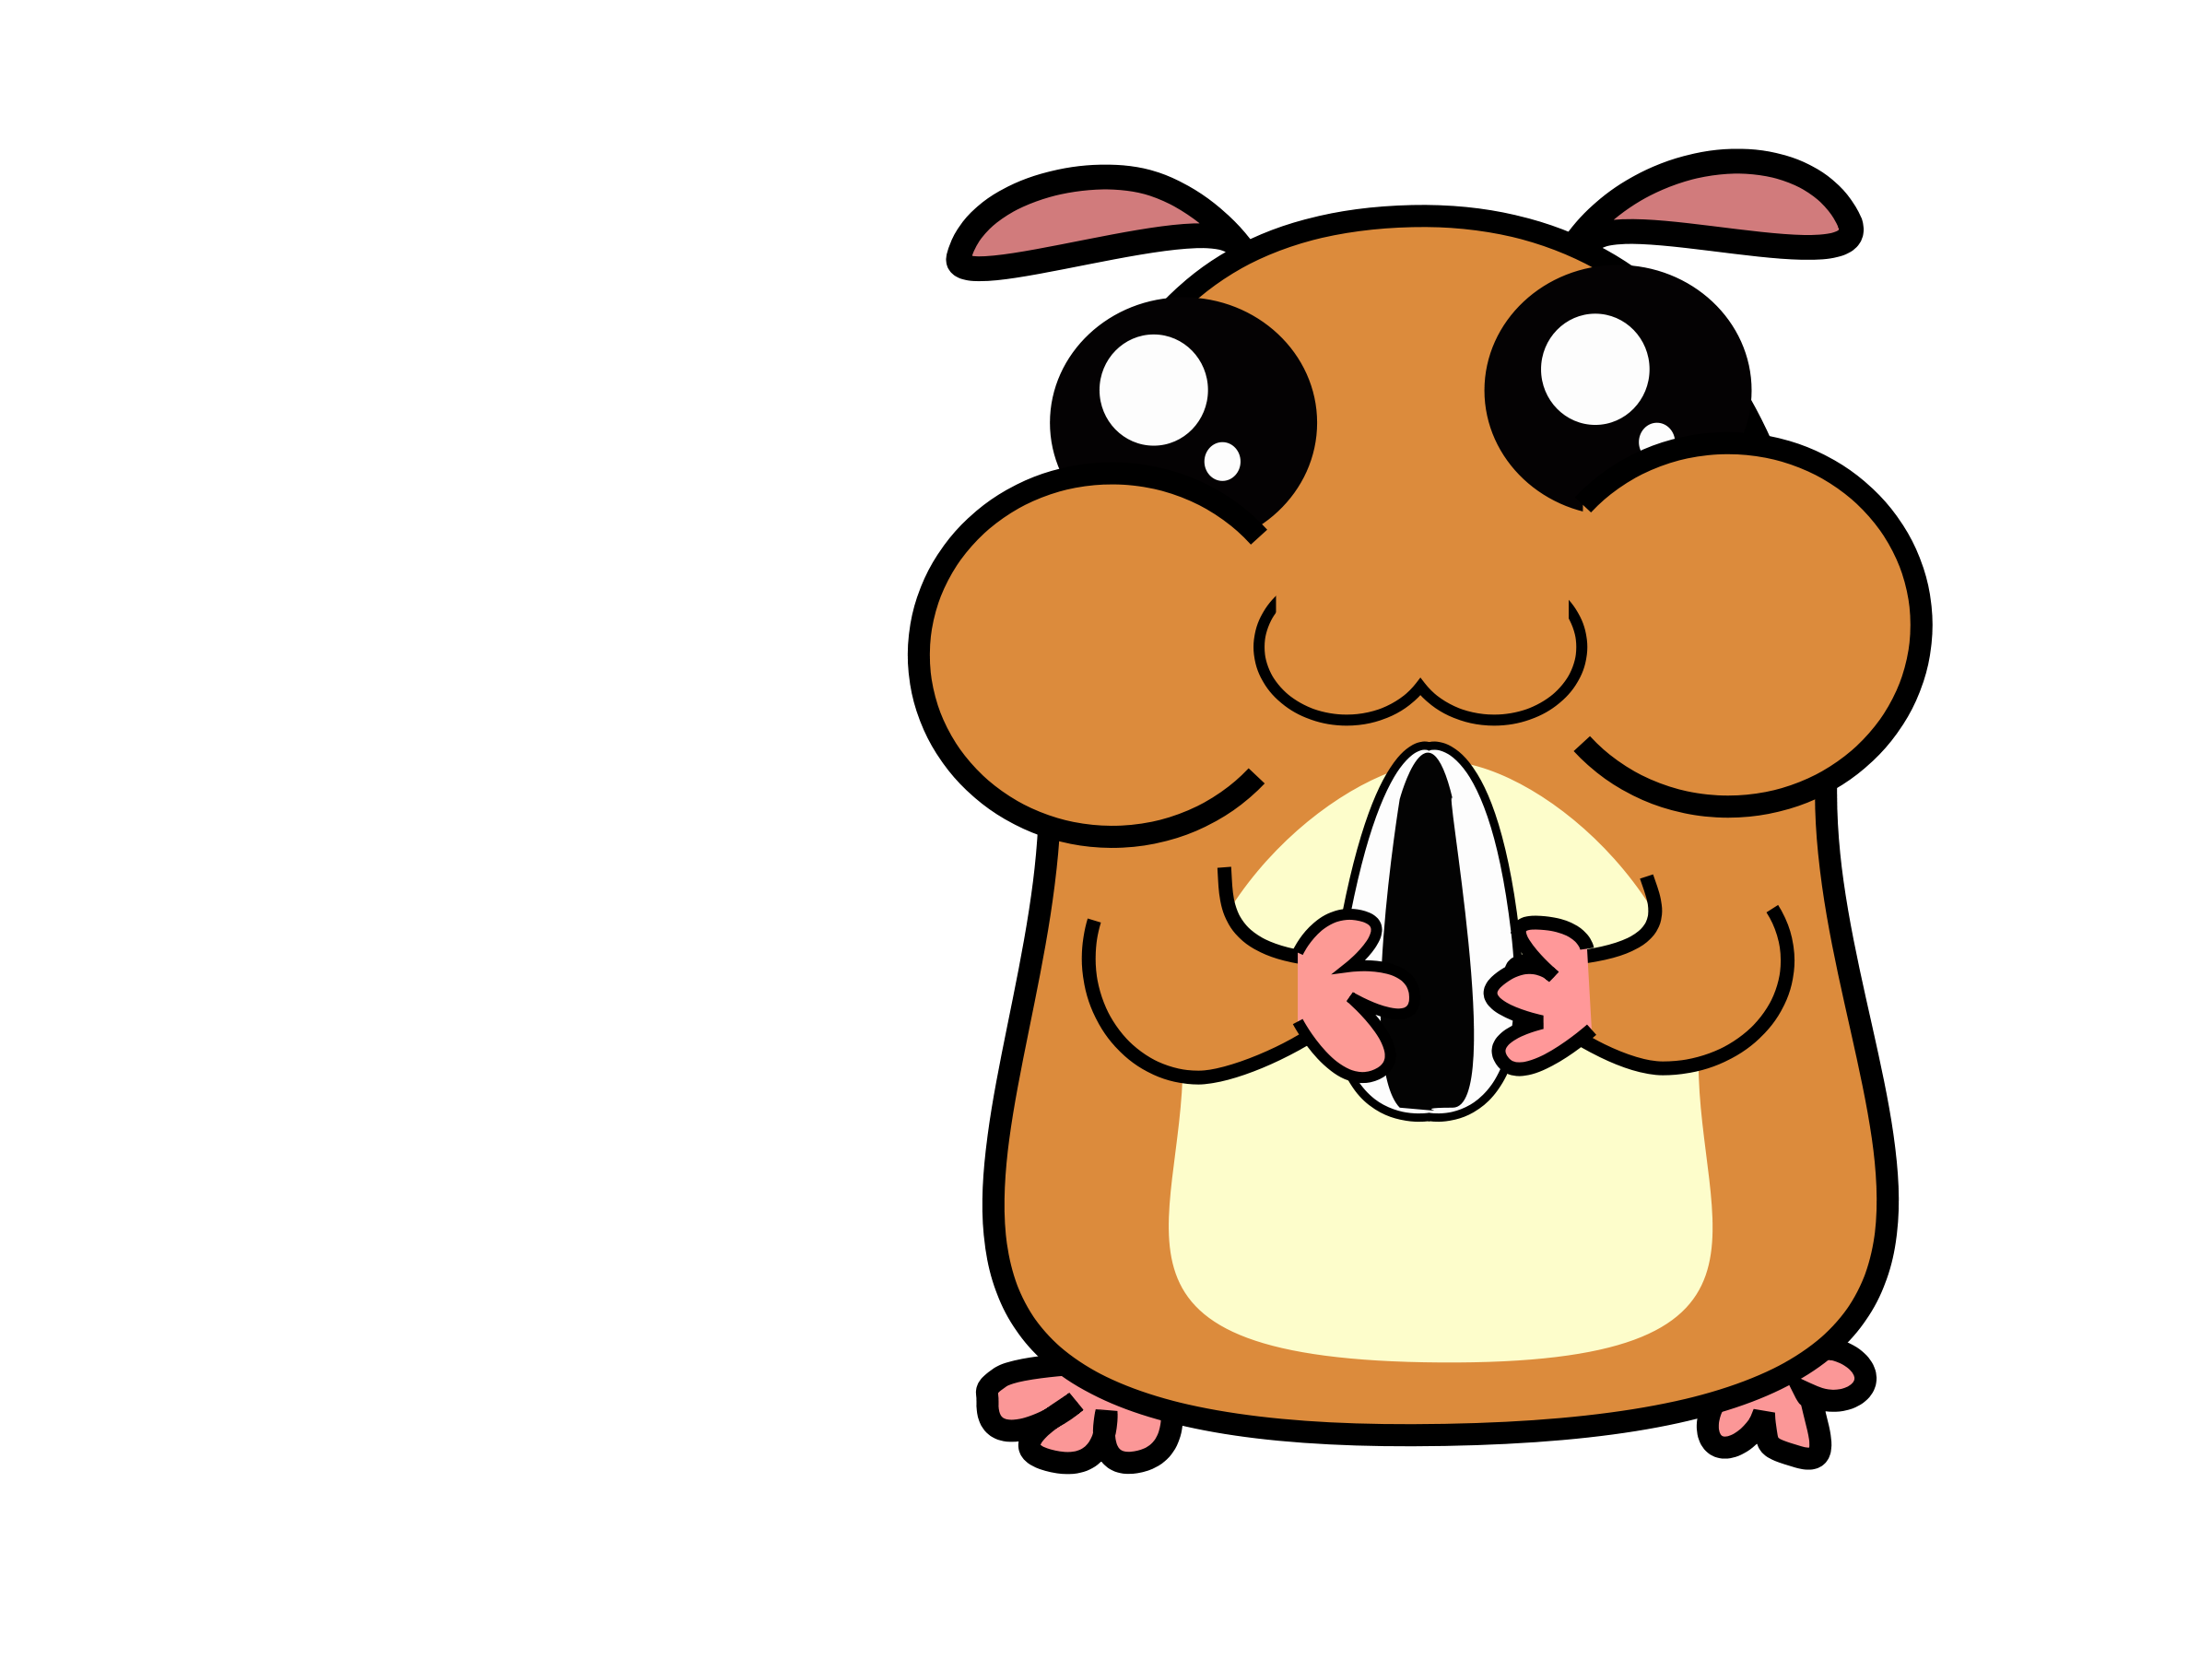 Hamster Clipart - Clipart Suggest Cute Hamster Cartoon